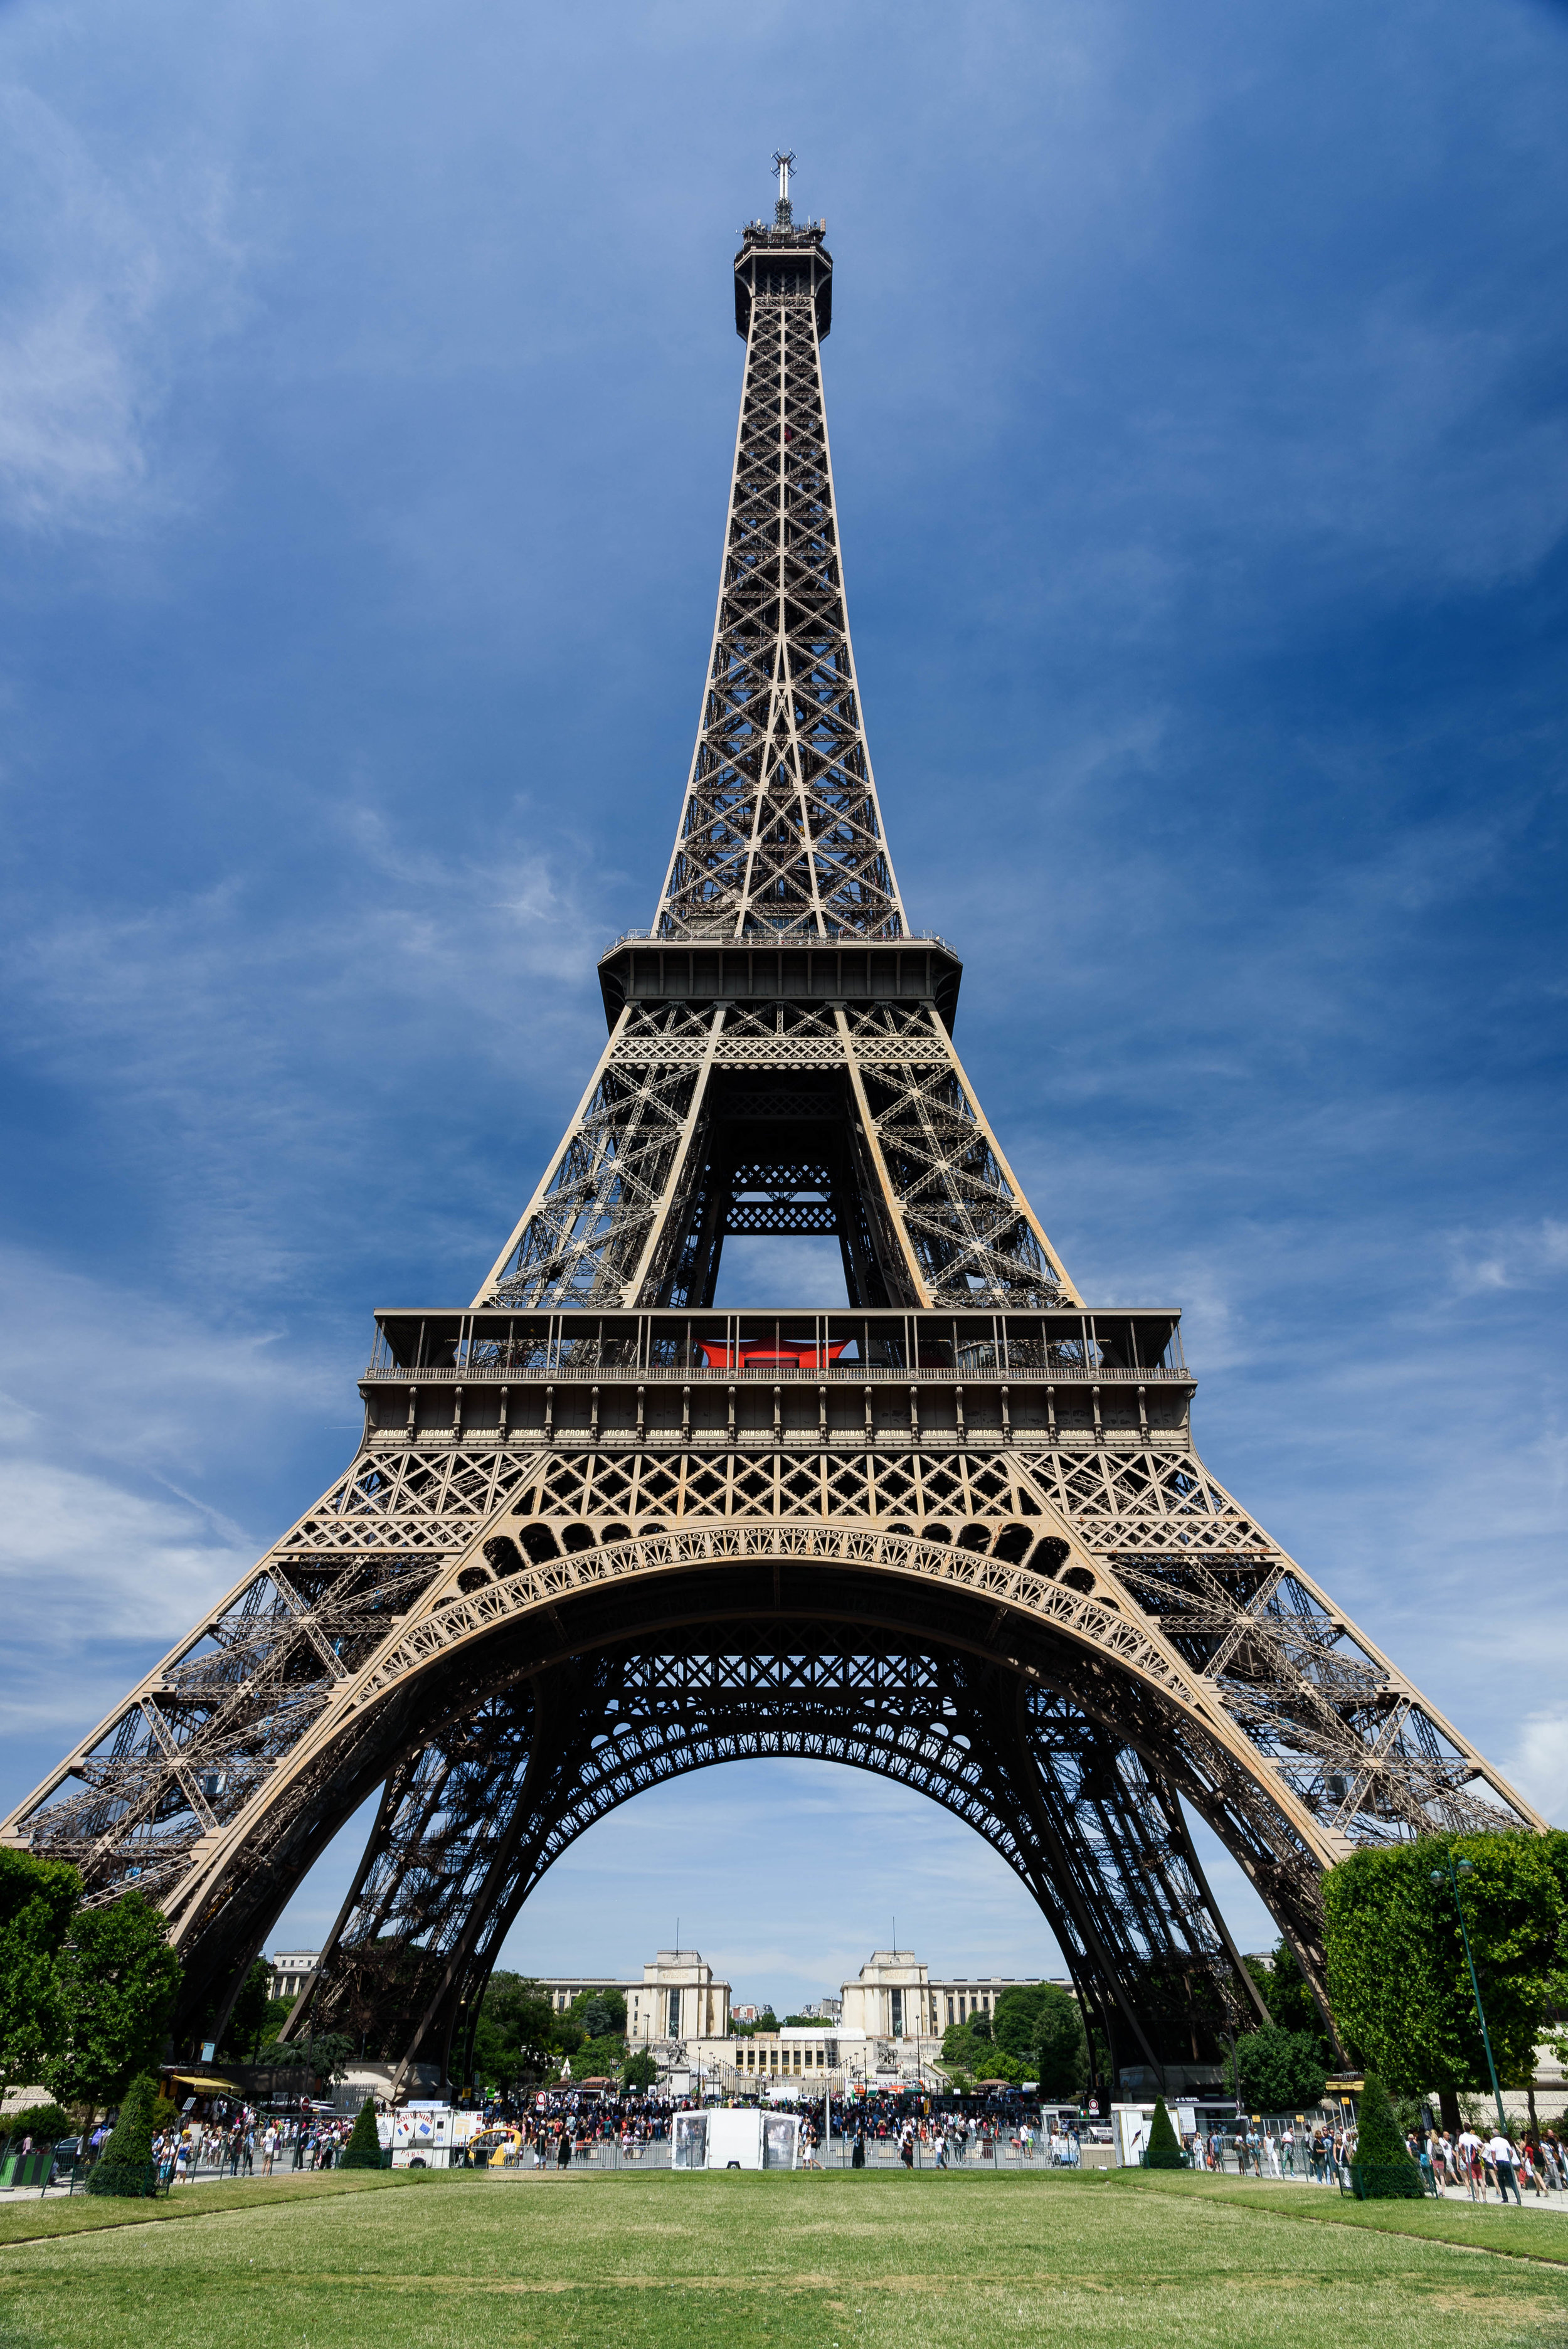 The Eiffel Tower from the Champs de Mars